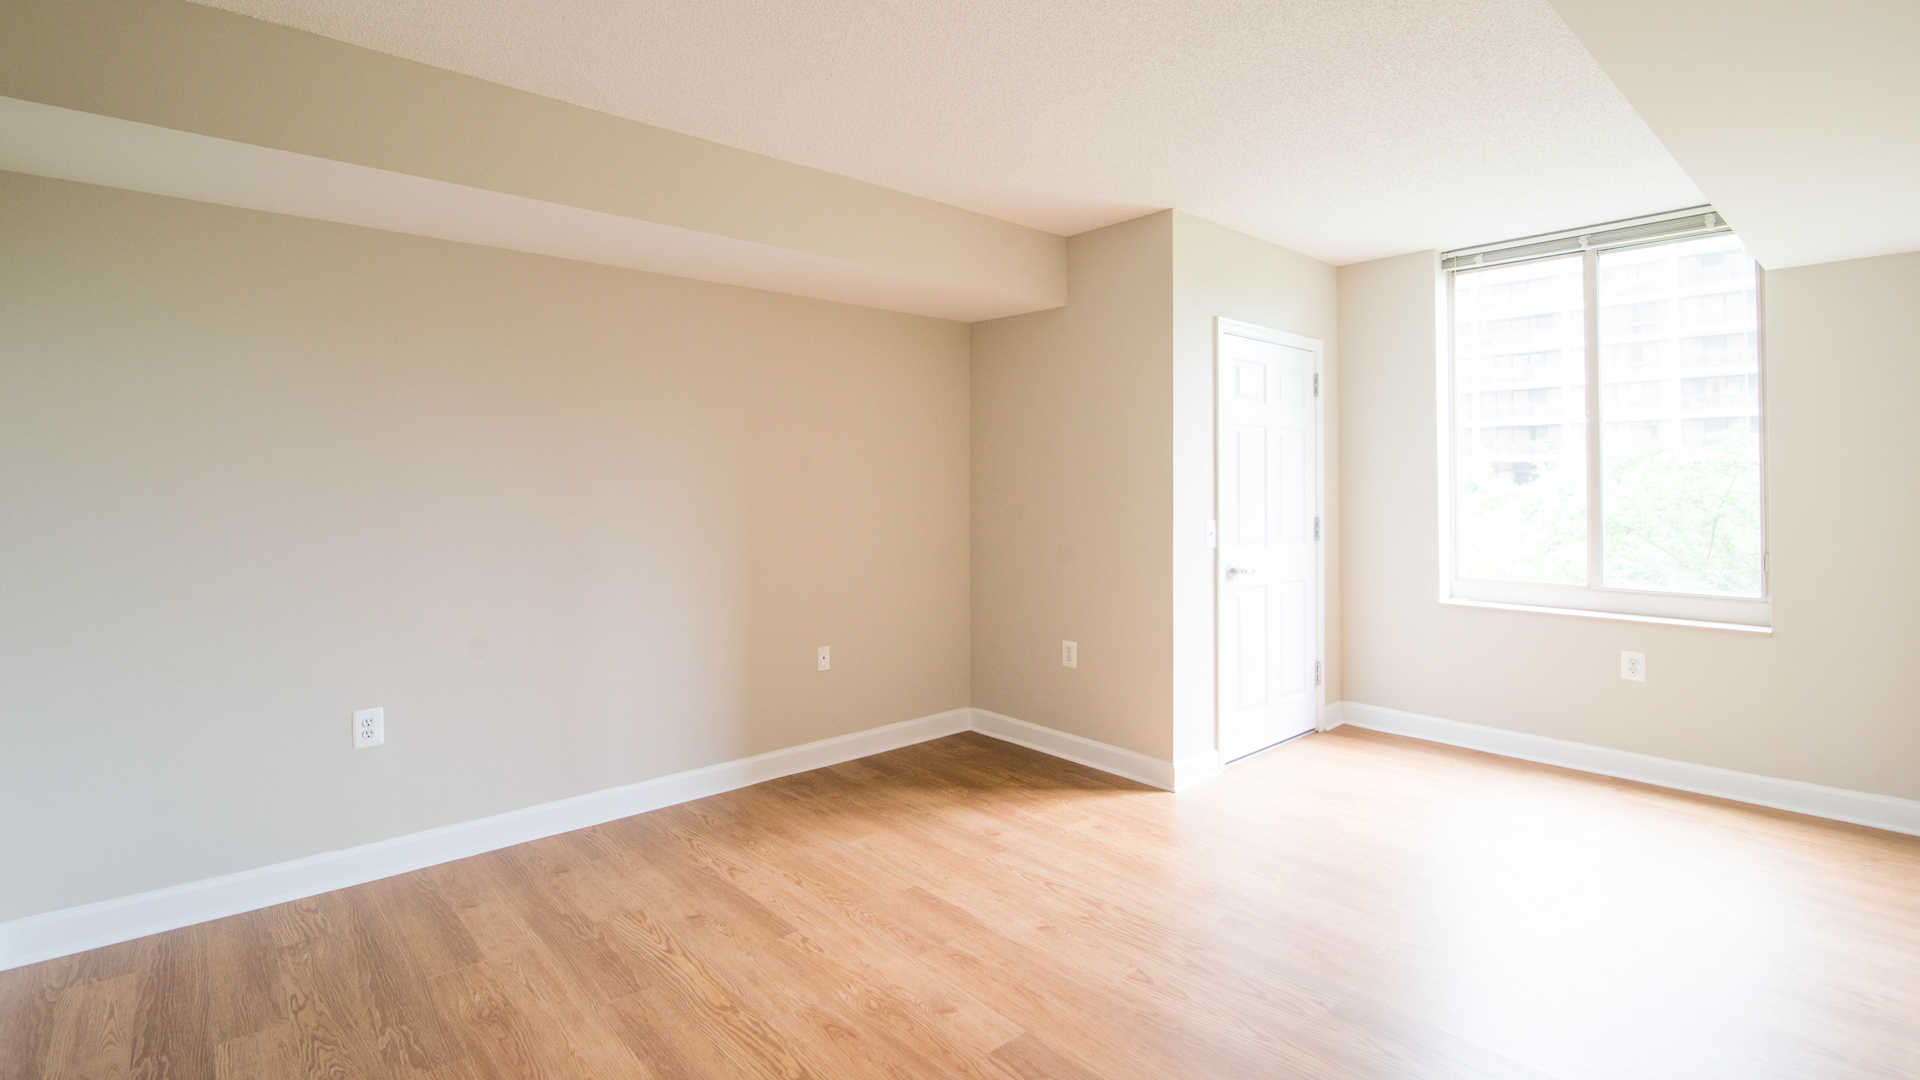 Bedroom with Hard Surface Flooring and 9-Foot Ceilings